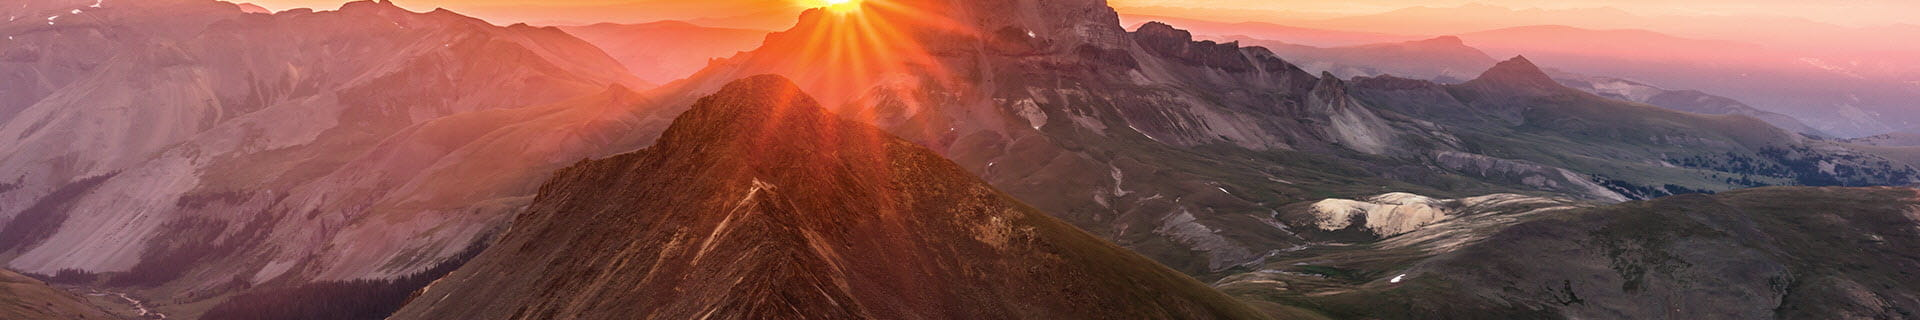 sunrise-over-mountains